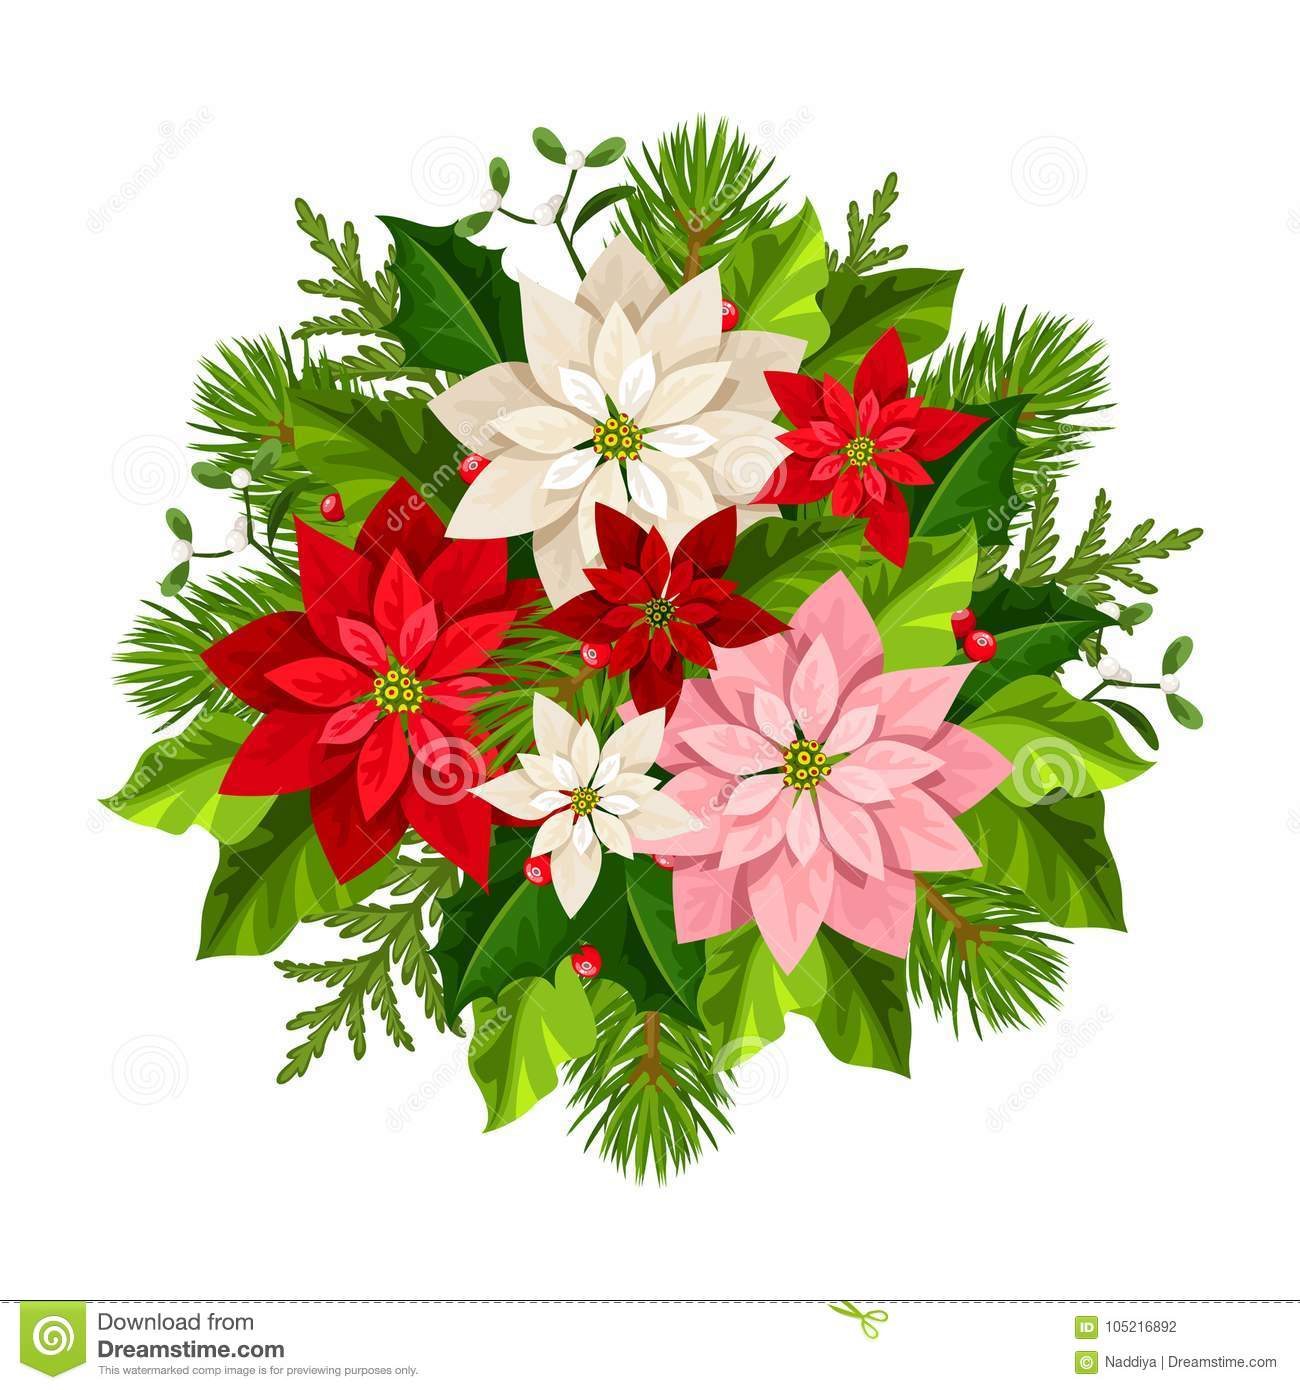 Christmas Bouquet With Poinsettia Flowers Fir Branches Holly And